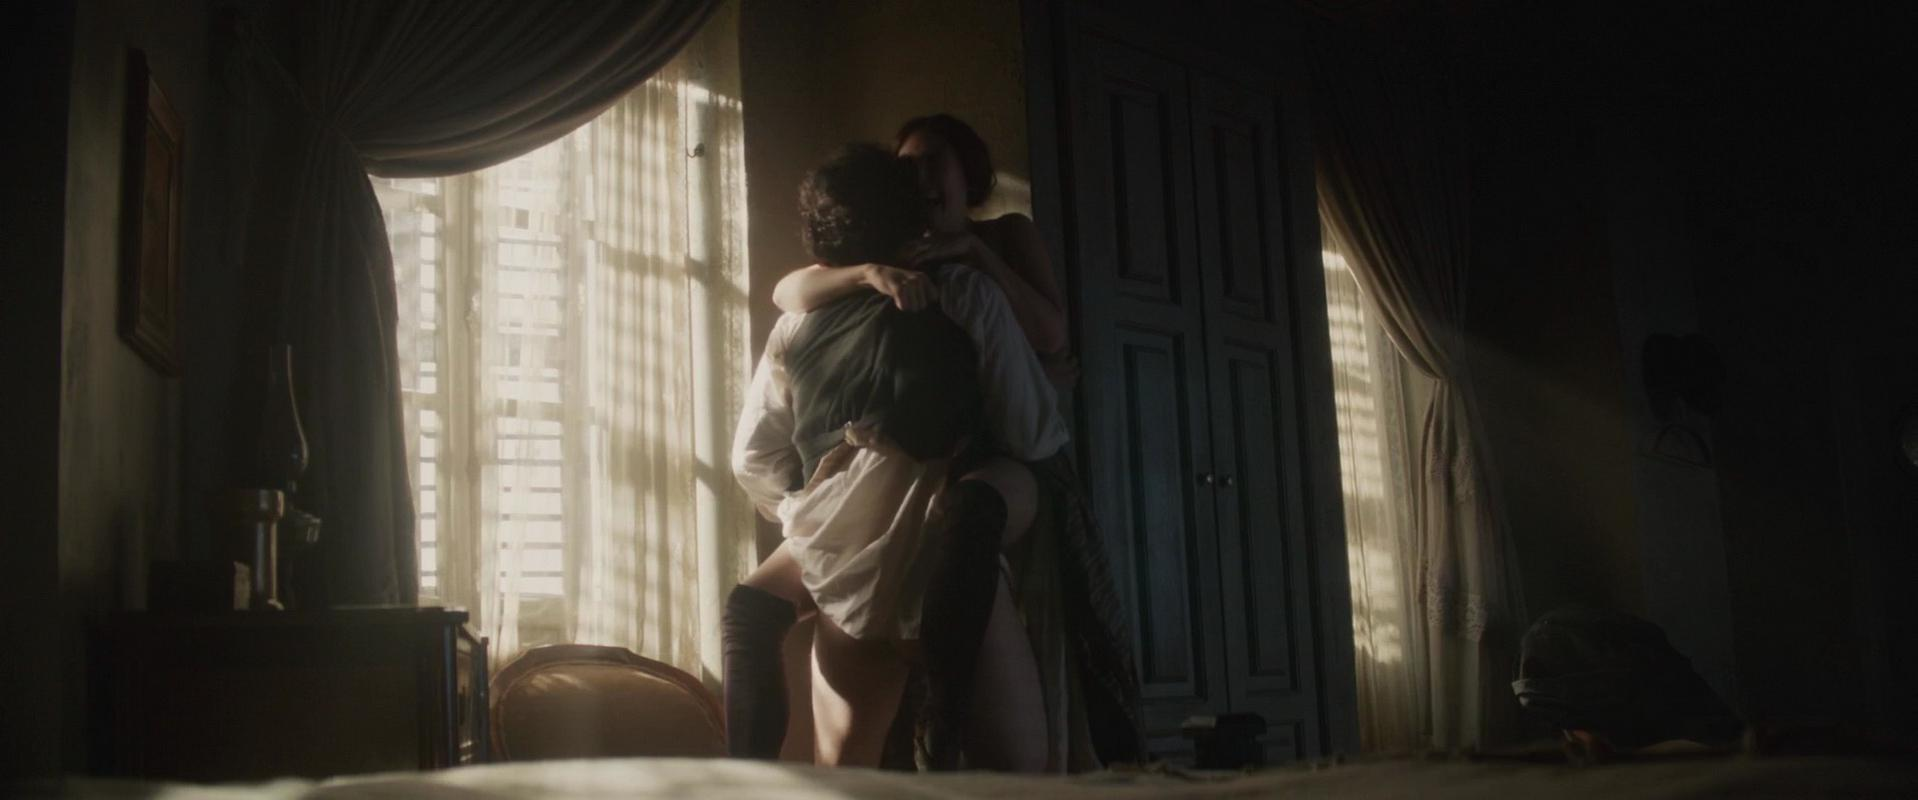 Elizabeth Olsen nude - In Secret (2013)